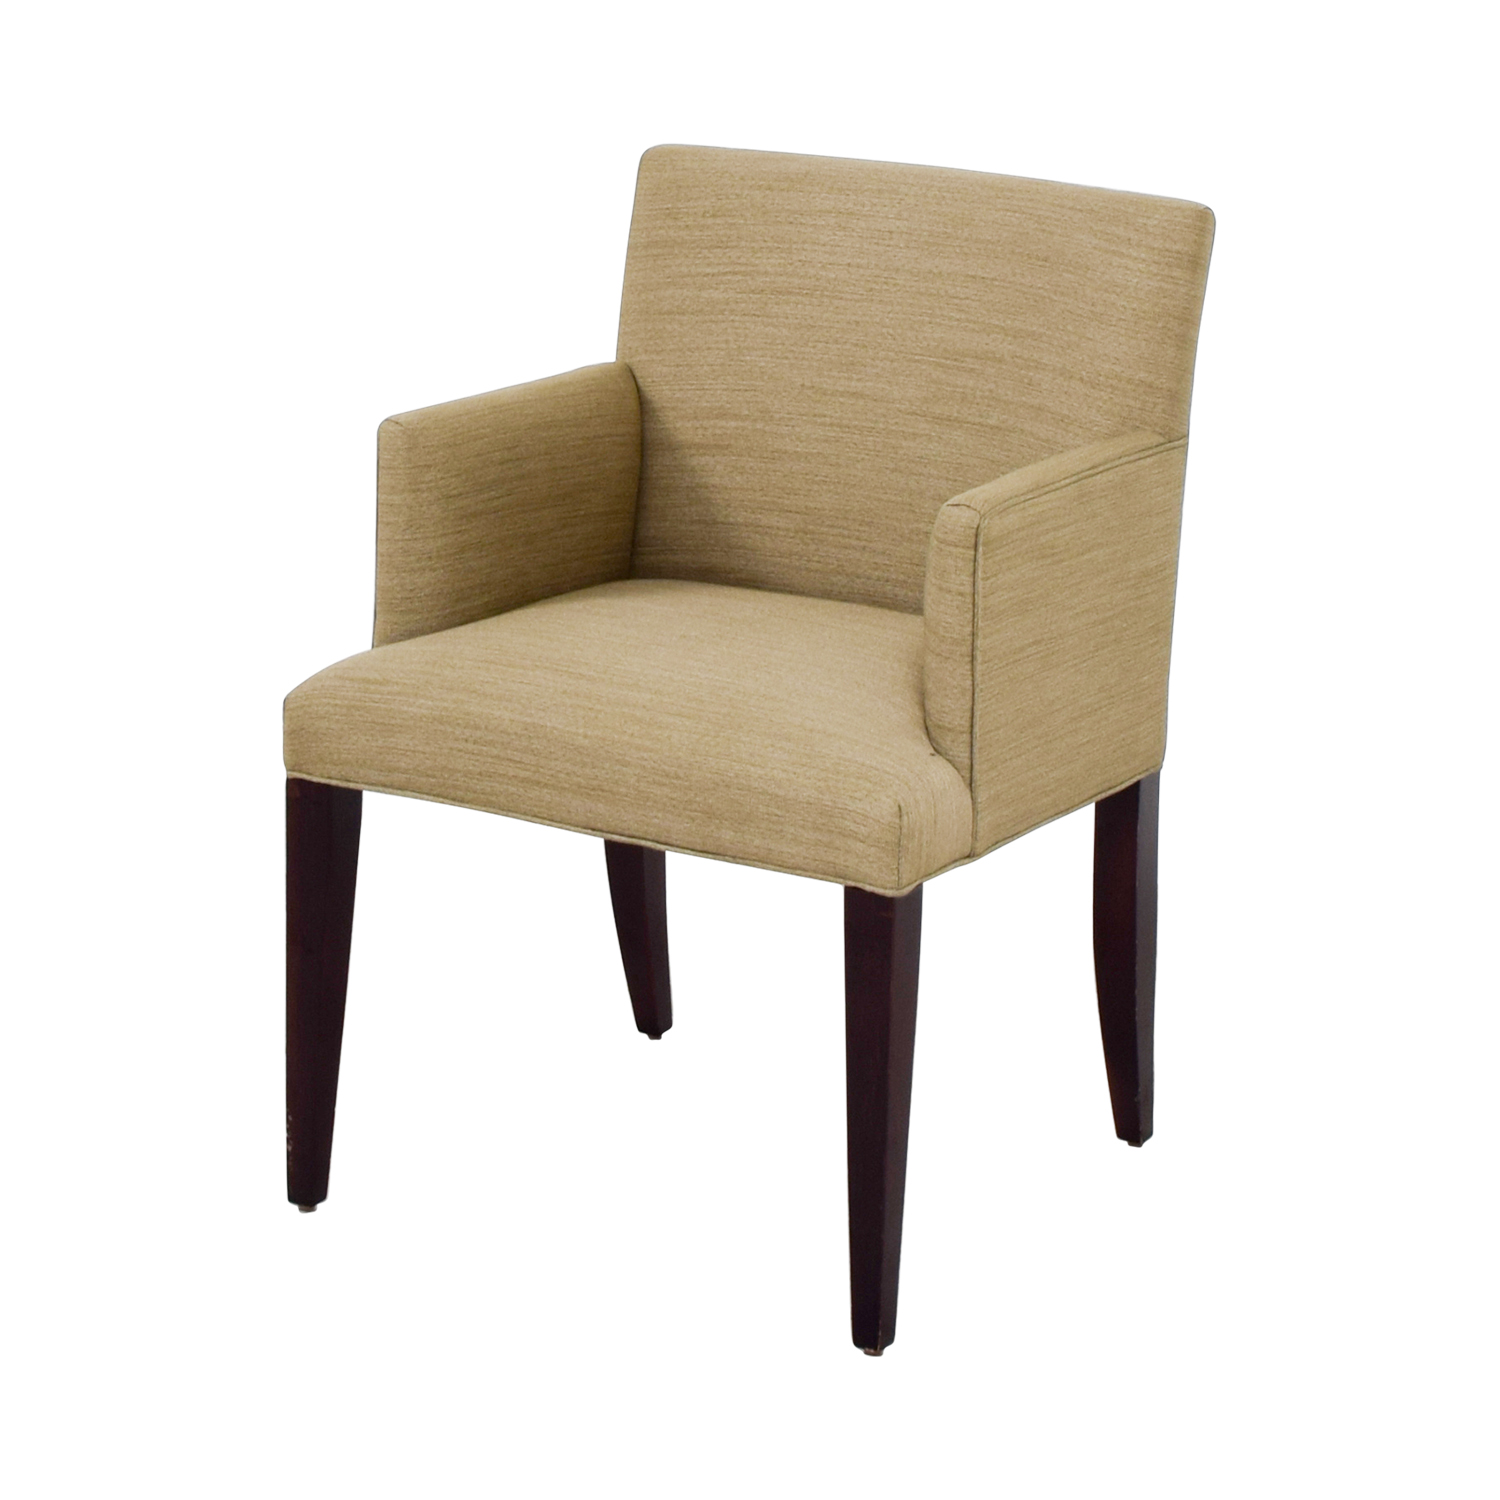 room and board chair chairman stool 47 off marie tan arm